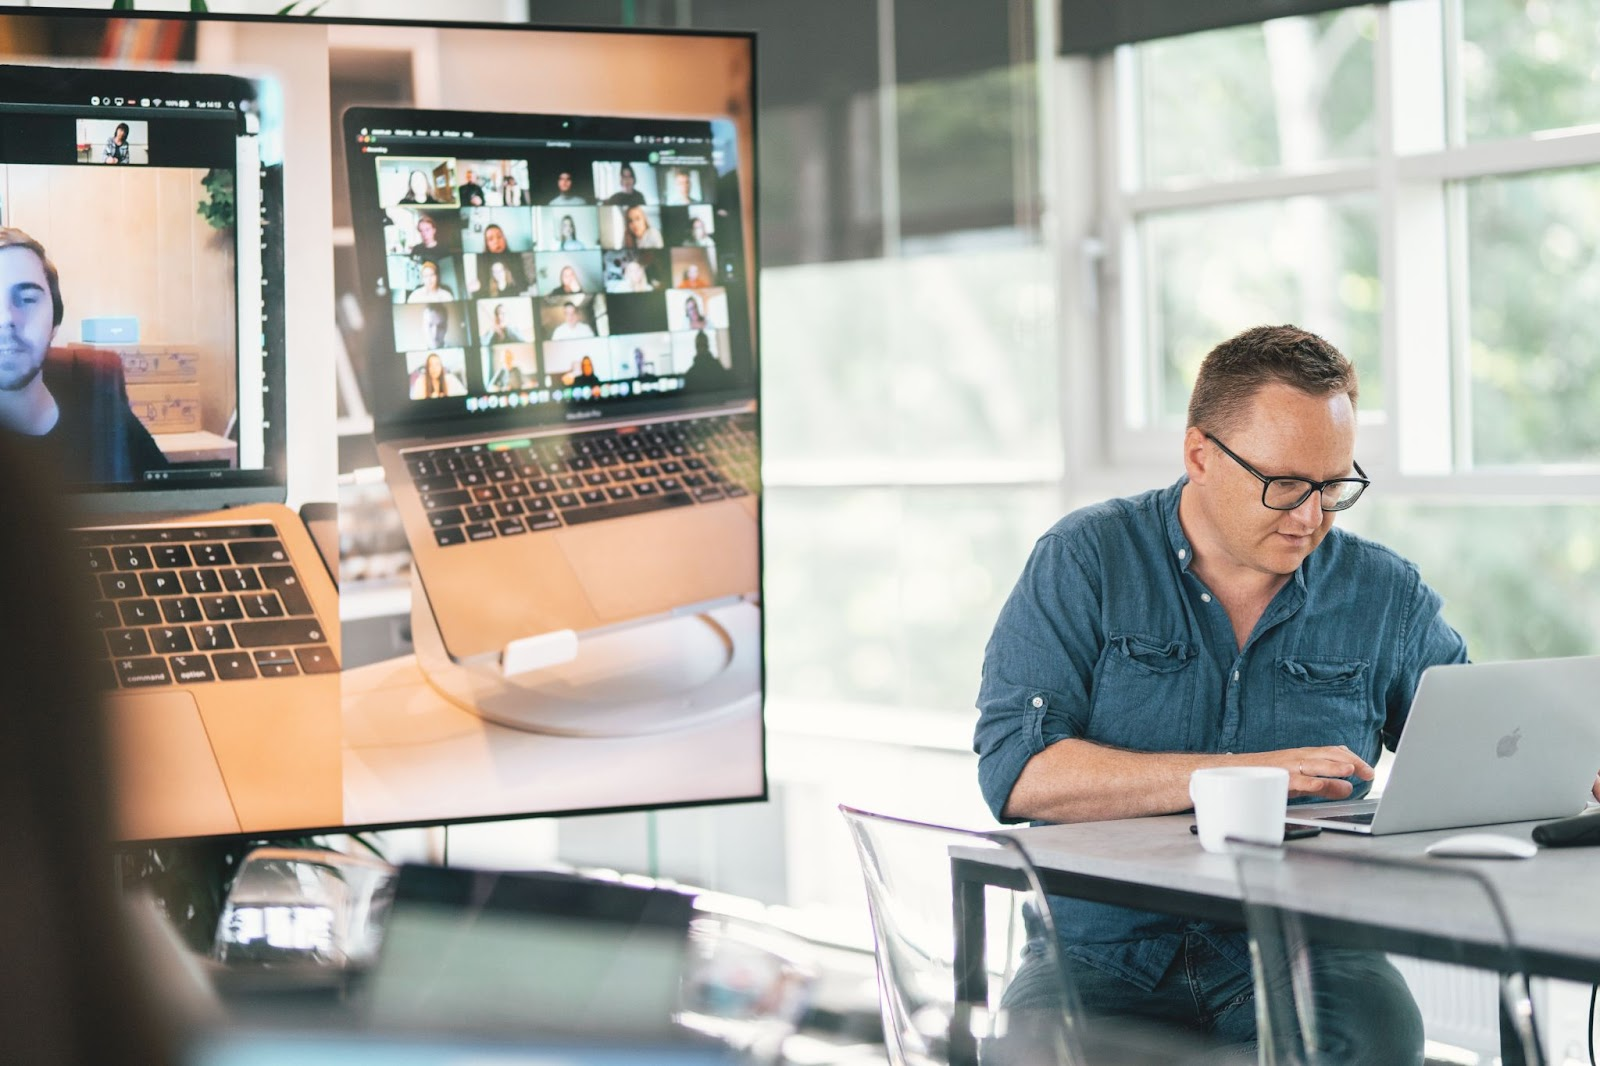 A man engaged in a team video call